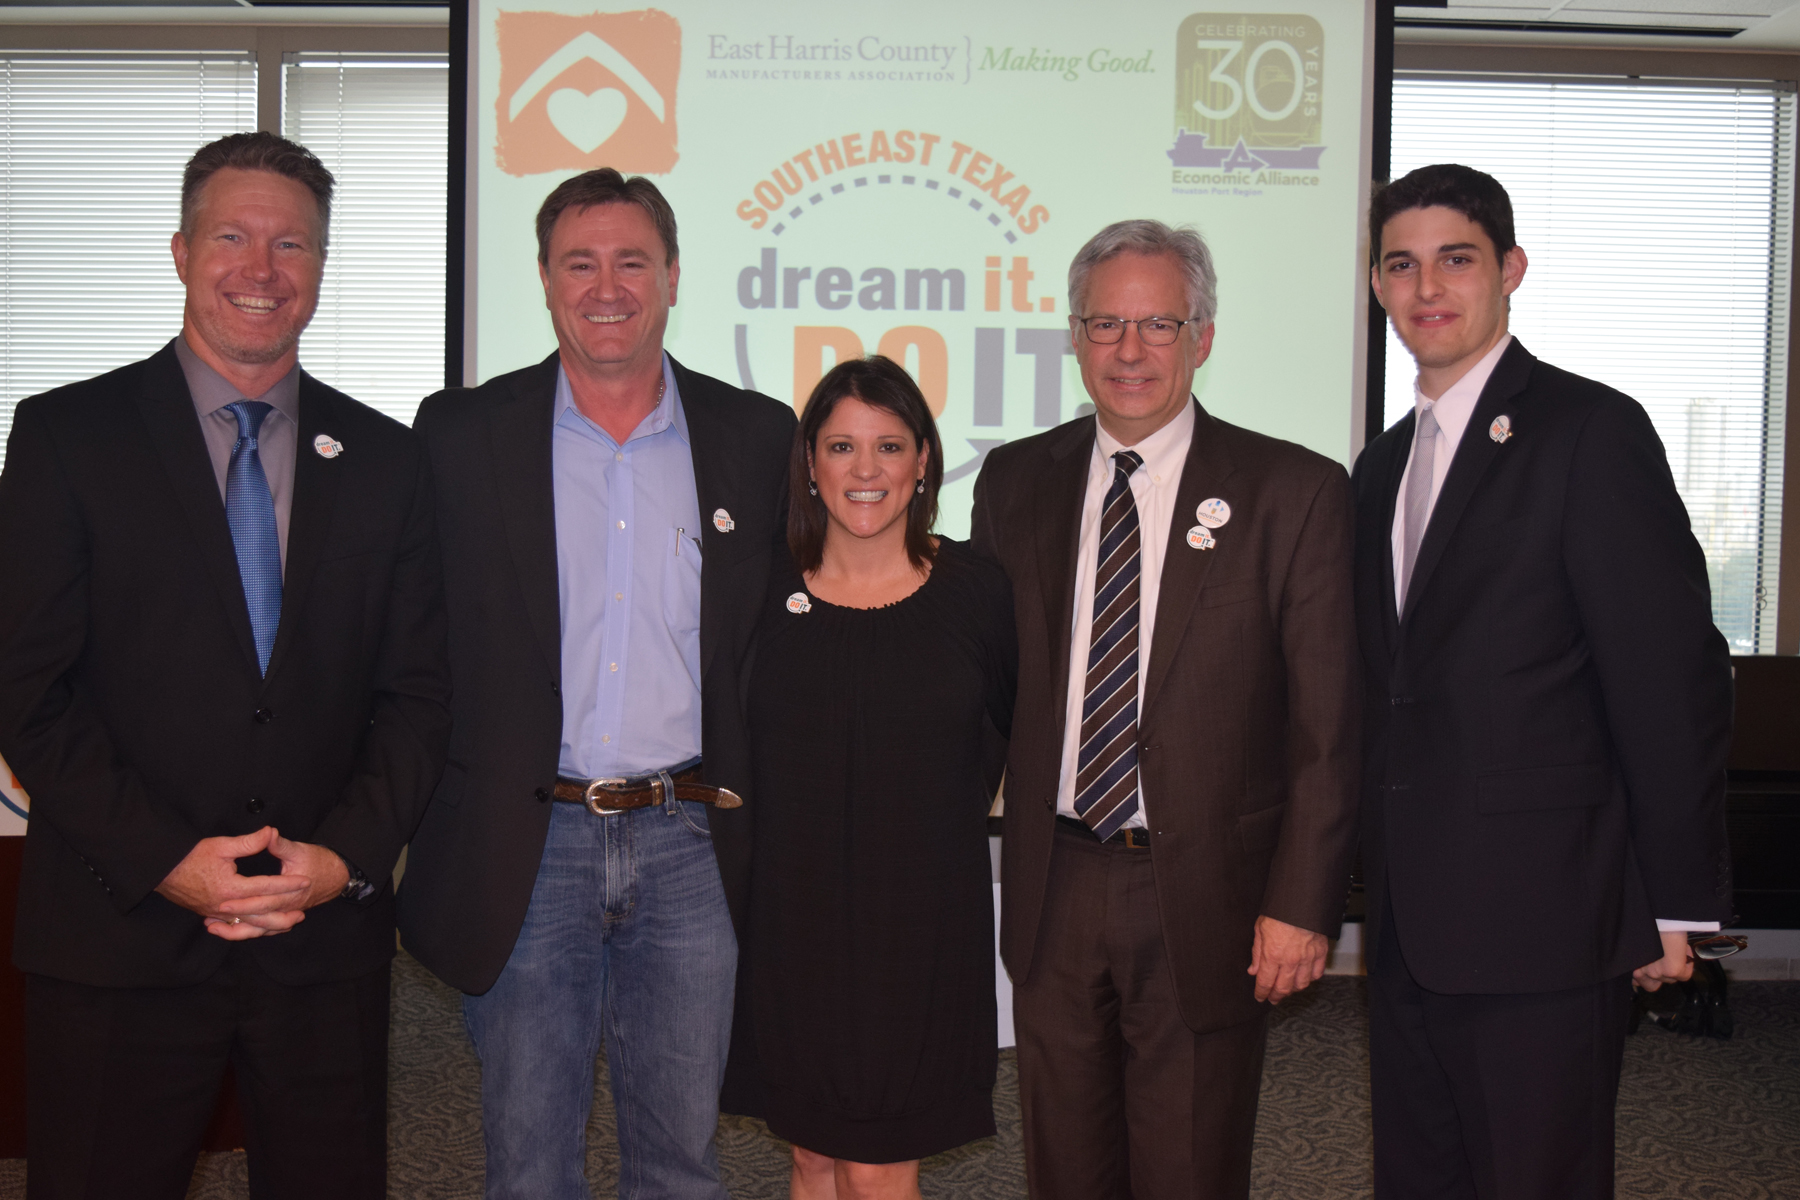 From left to right: Chad Burke, President & CEO, Economic Alliance Houston Port Region; Barry Klein, General Manager, Shell Deer Park; Claudia Vasquez, Sr. VP and Chief Program Officer, Neighborhood Centers Inc.; Peter Beard, Sr. VP, Greater Houston Partnership; Nicolas D'Antonio, Program Manager, Manufacturing Institute.